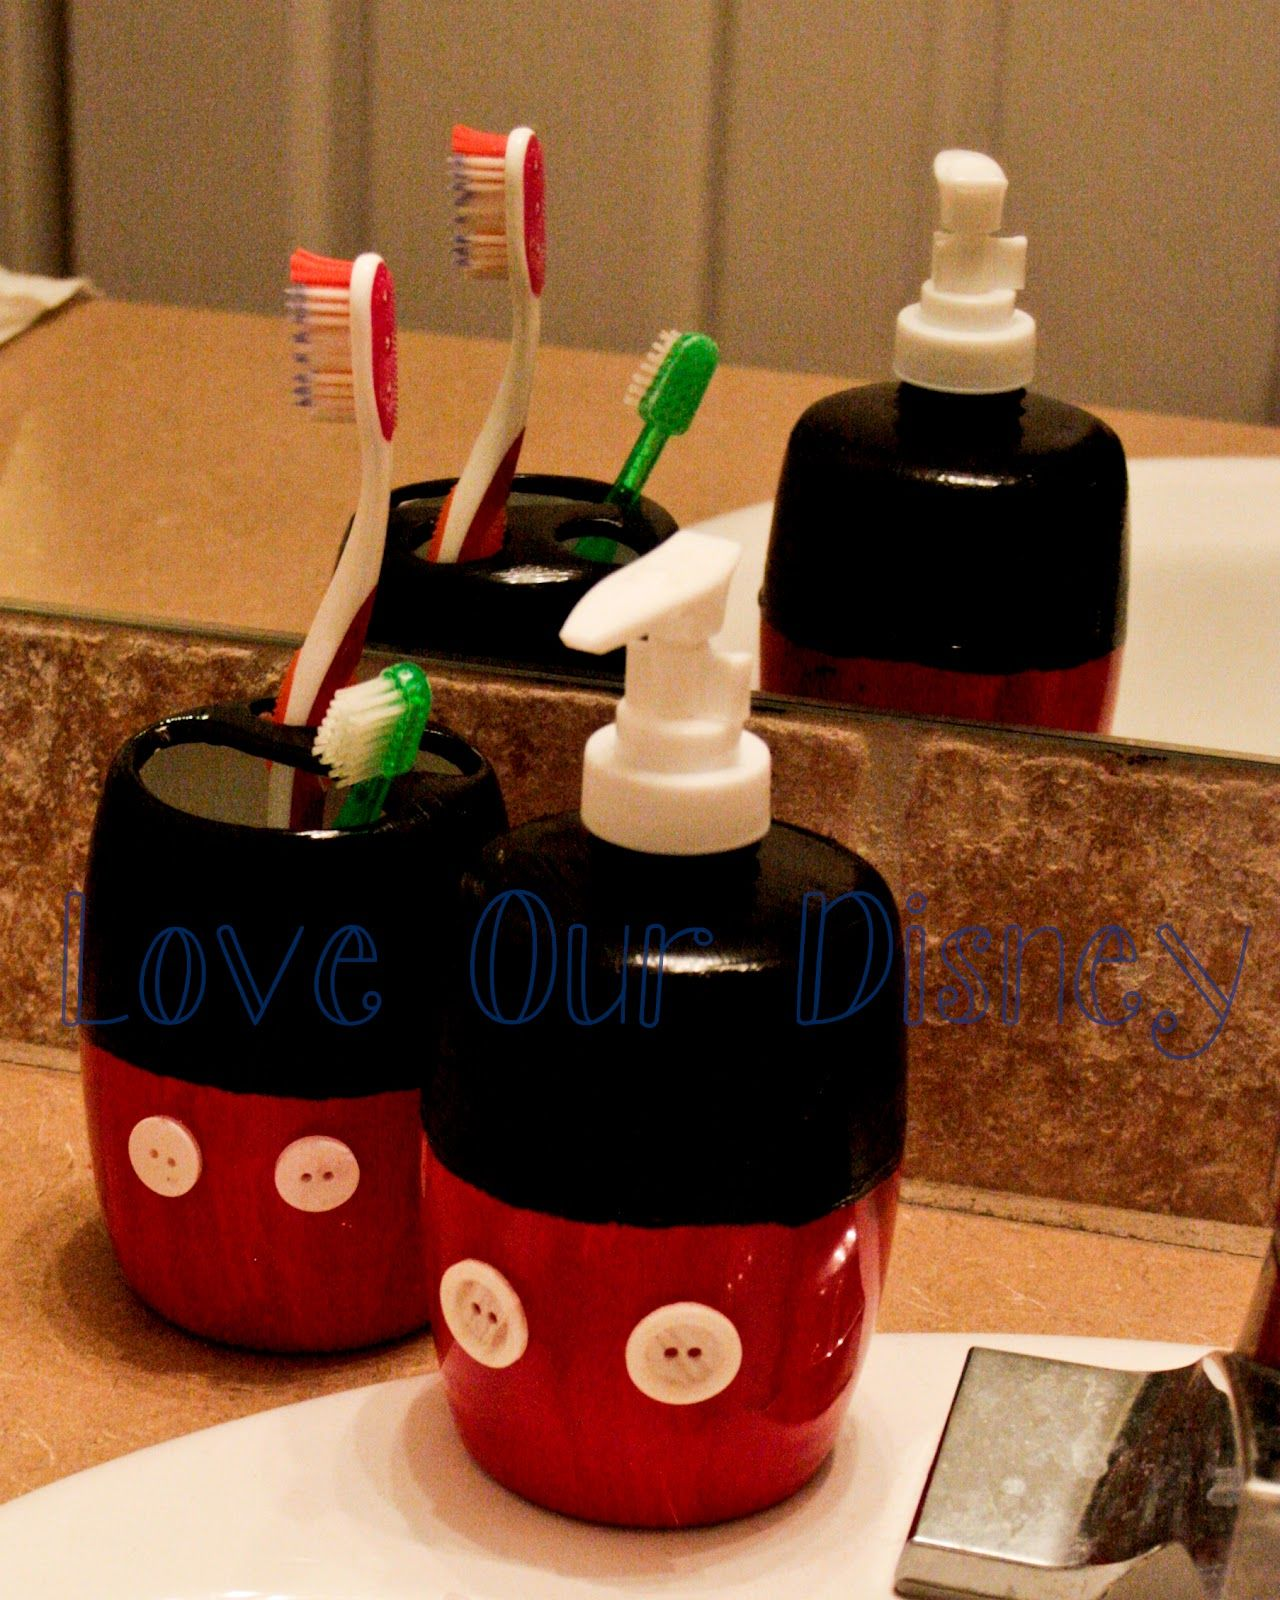 Love Our Disney Craft Time Bathroom Decor How Fun Would This - Mickey mouse bathroom accessories